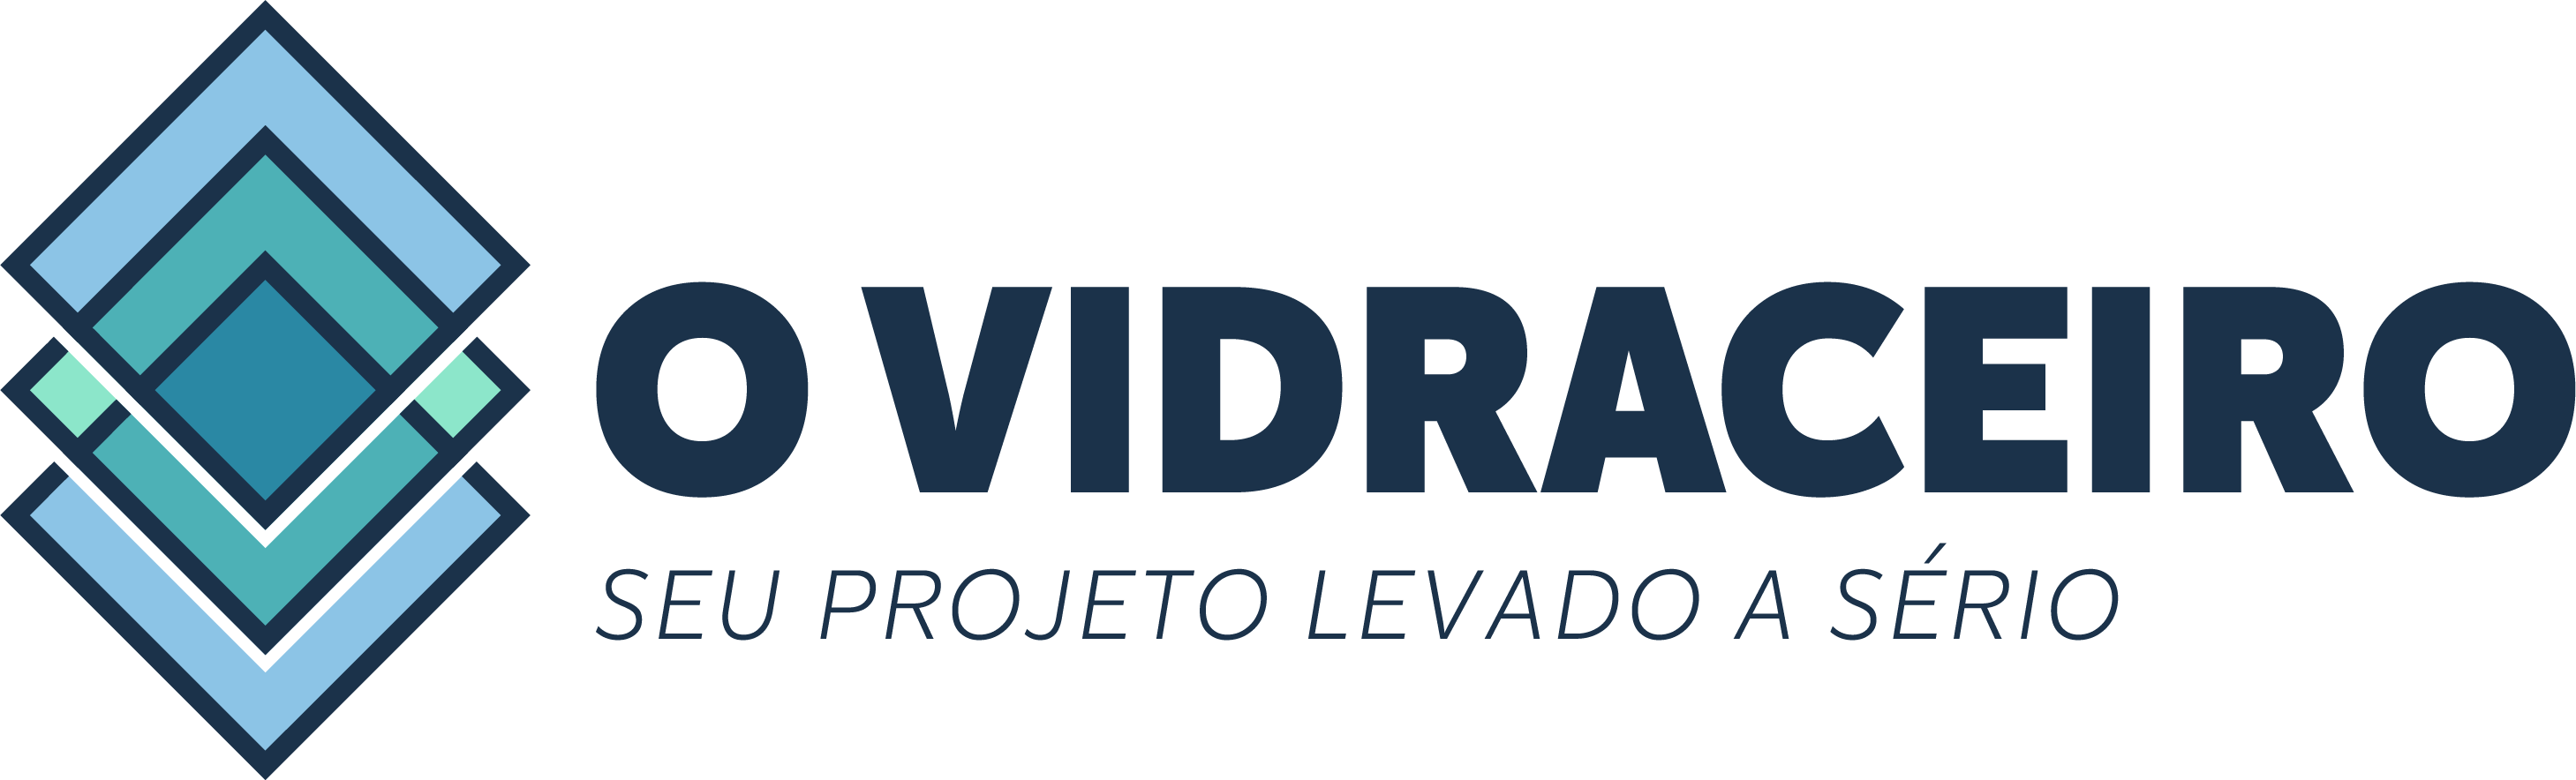 o_vidraceiro_logotipo_horizontal